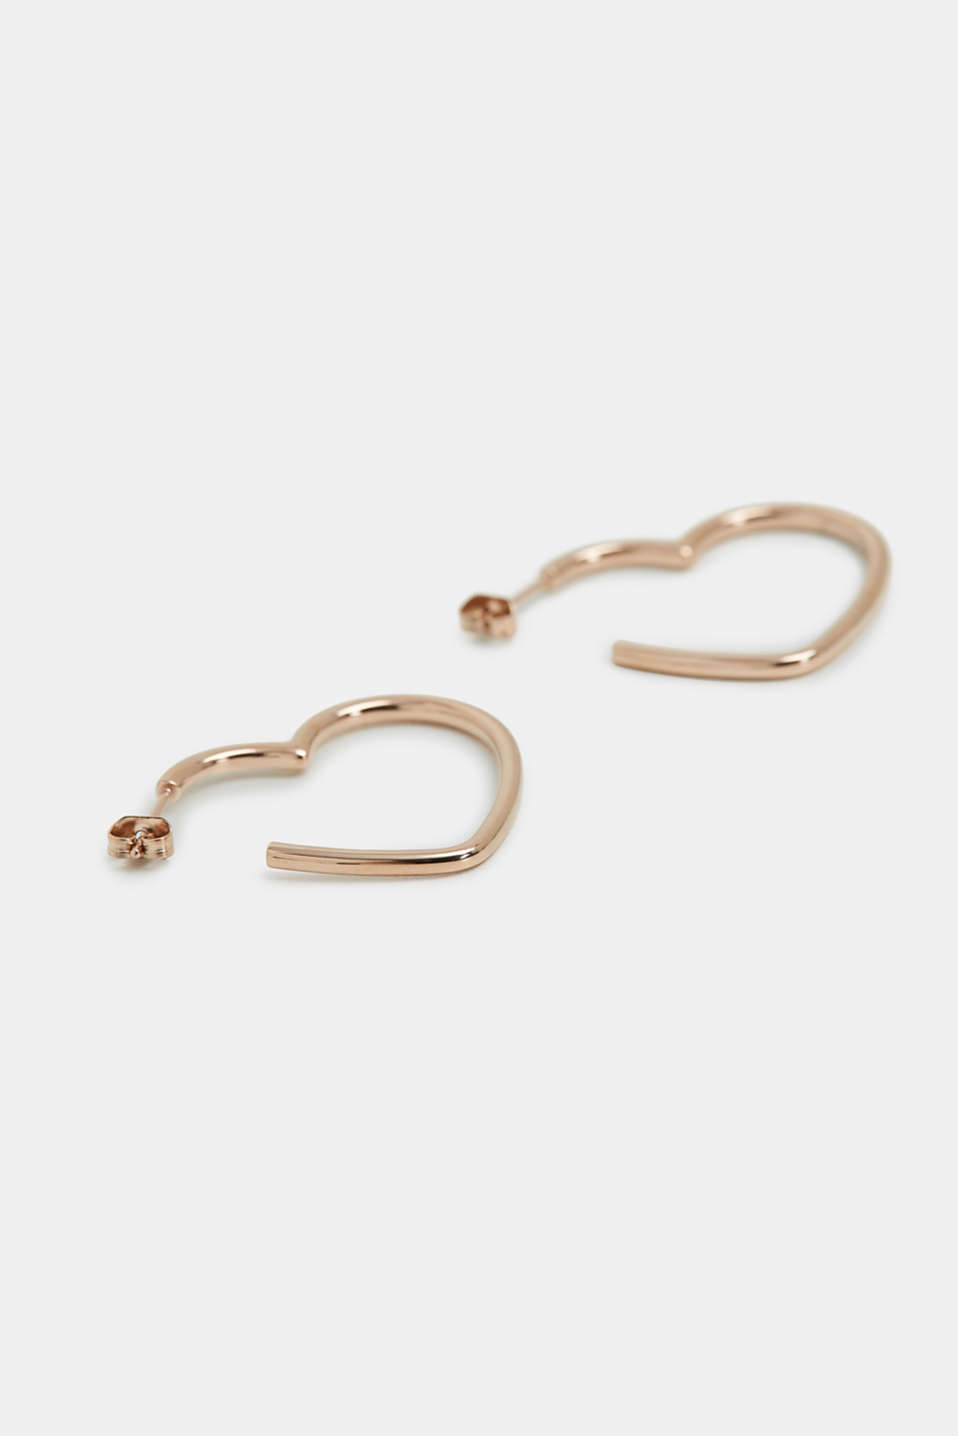 Heart-shaped earrings in stainless steel, ROSEGOLD, detail image number 1